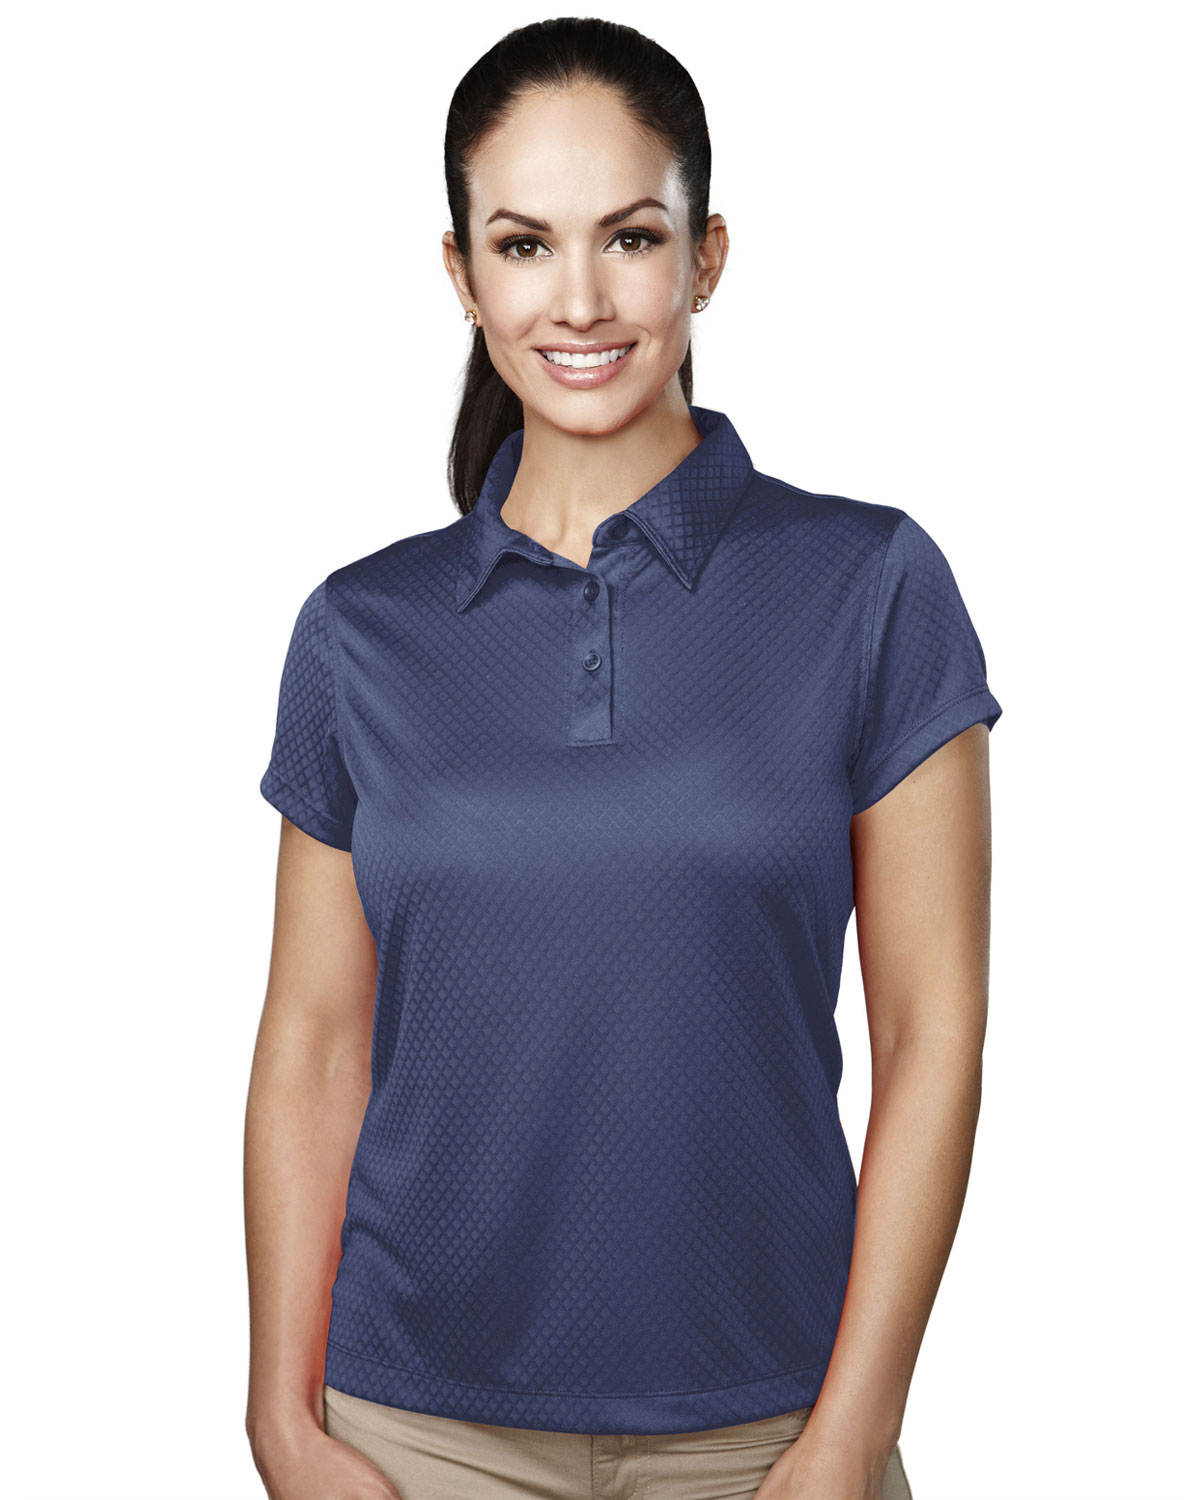 100 Polyester Polo Shirt Buy Womens Big Size Knit Polo Shirt